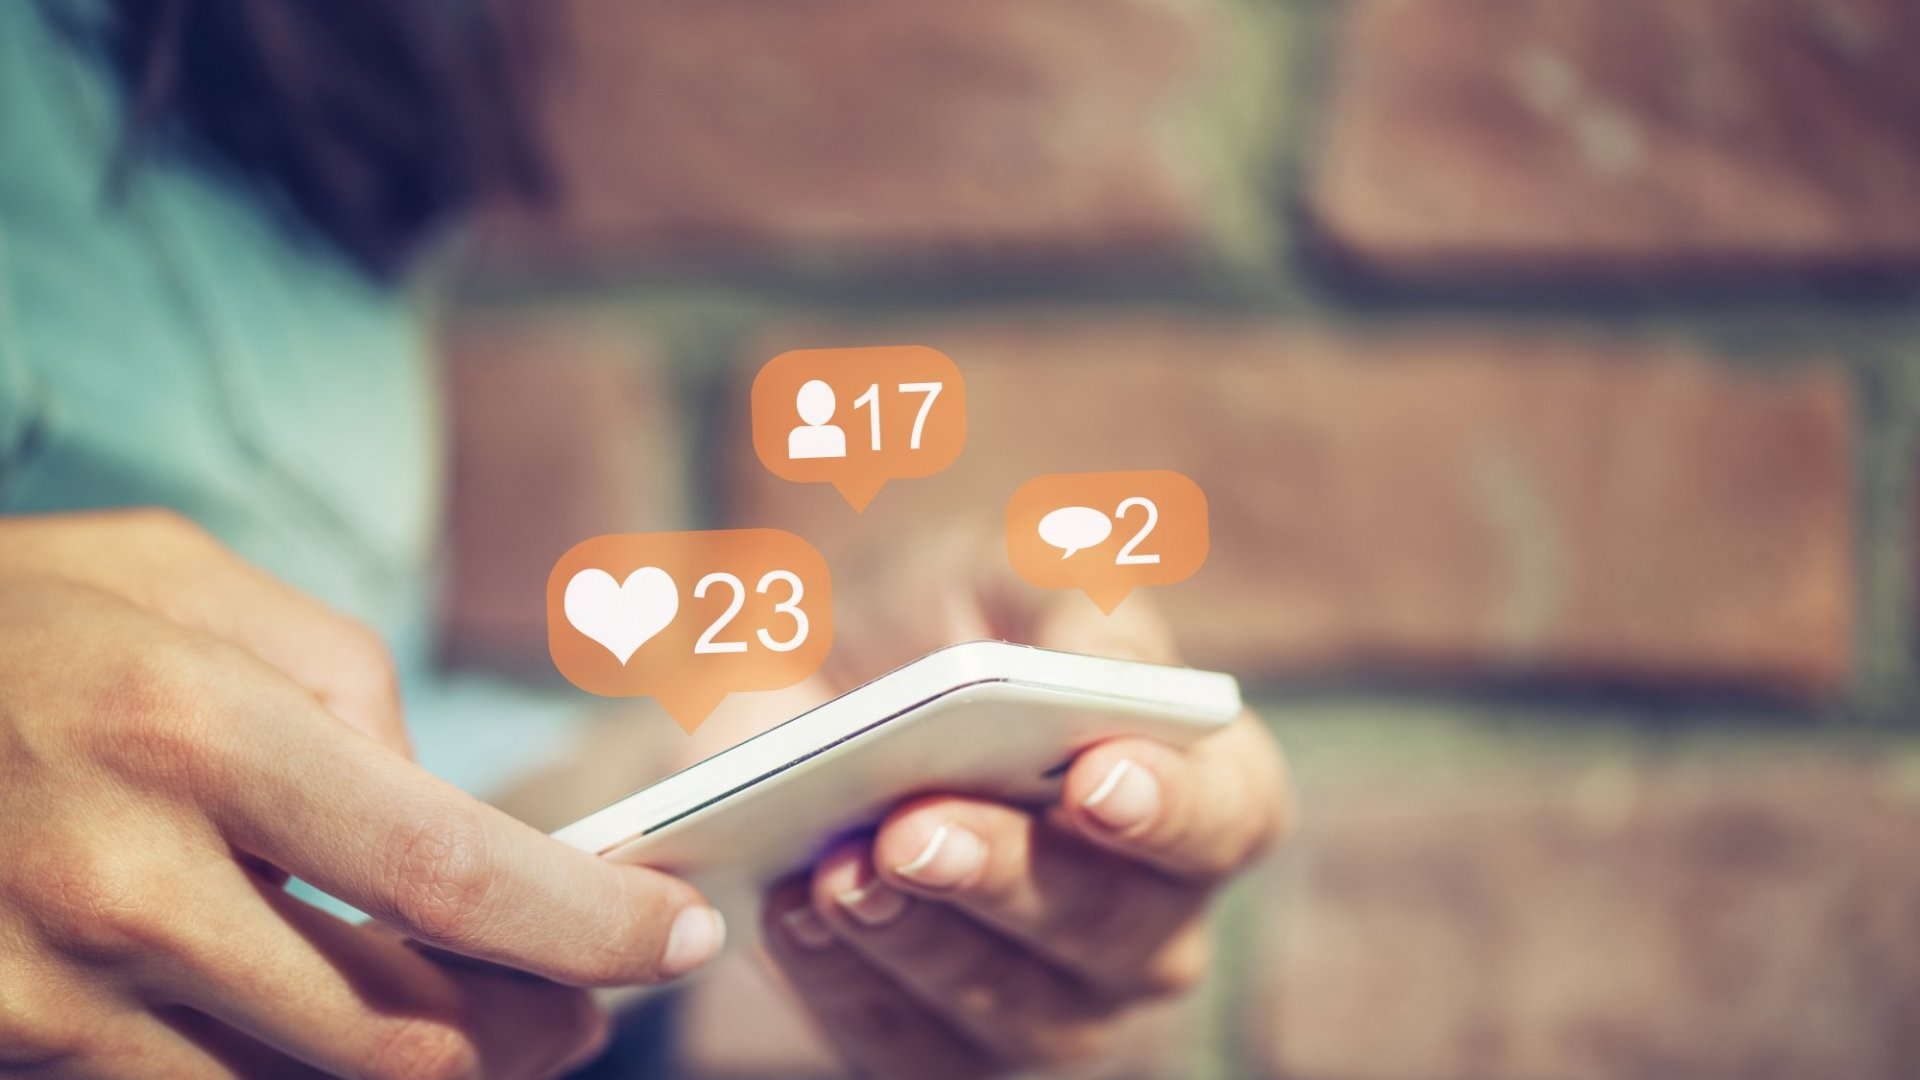 How to Make Facebook and Instagram's Changes Work for Your Personal Brand